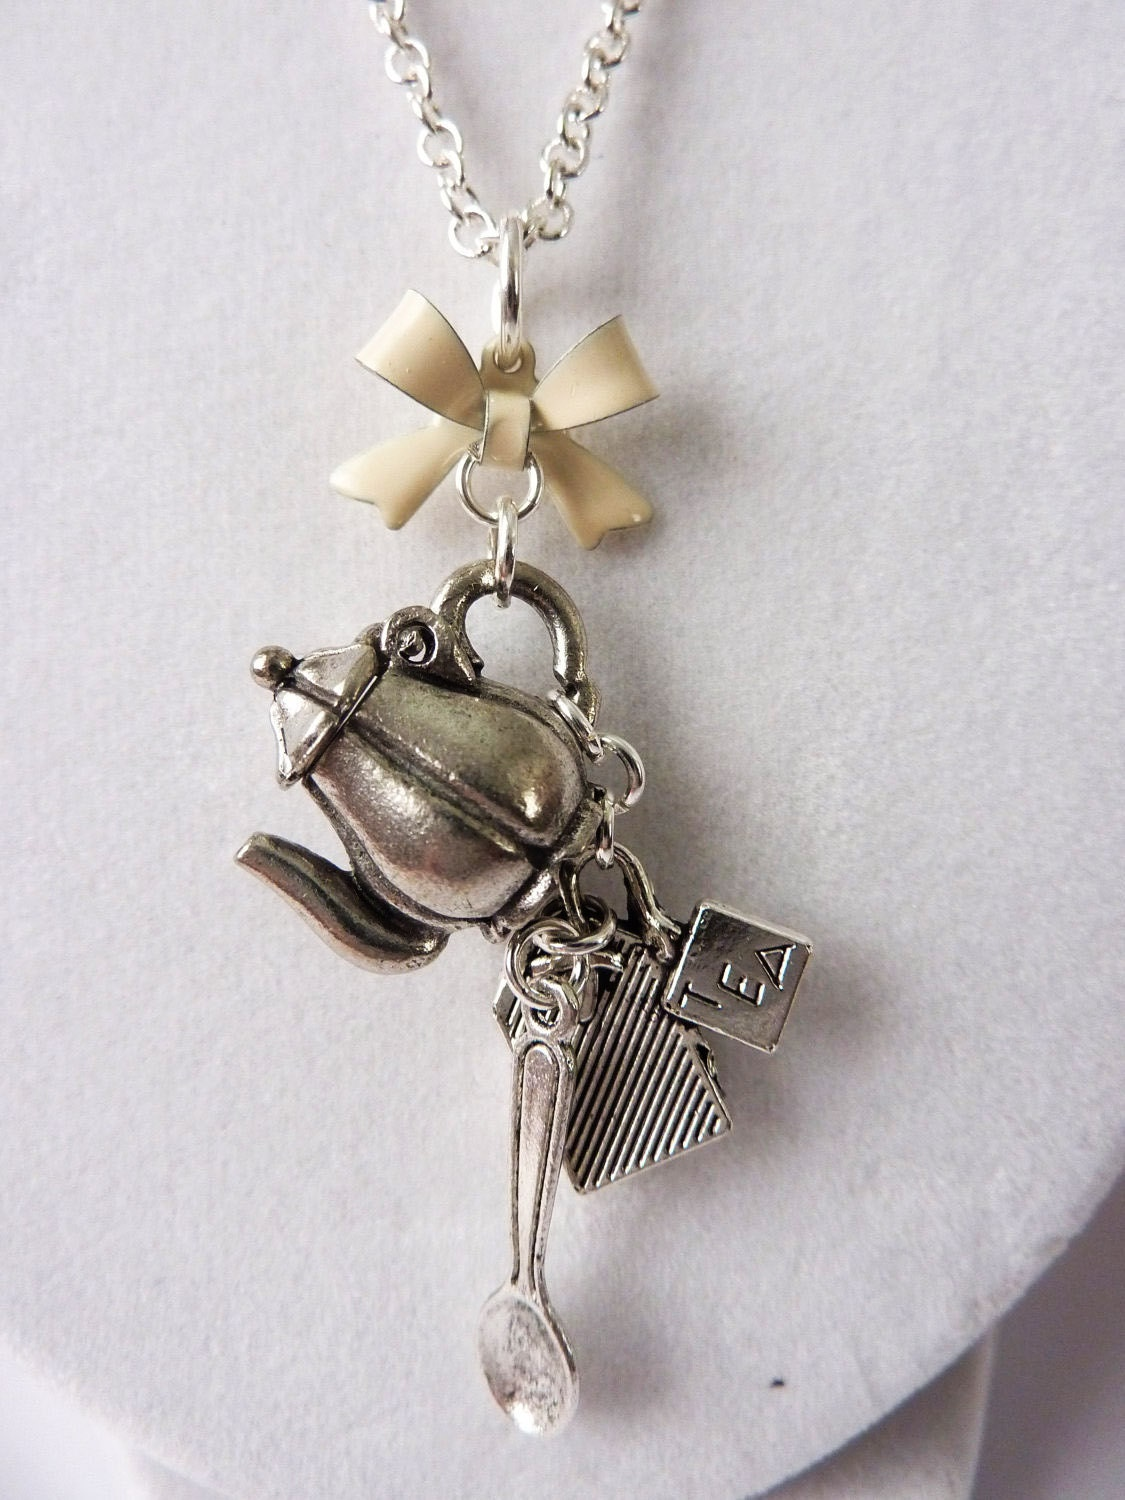 Tea Party Charm Necklace with Hinged Teapot, Tea Bag, Spoon, and Cream Bow - Cute Unique Tea Time Necklace by Weirdly Cute Jewelry - WeirdlyCute